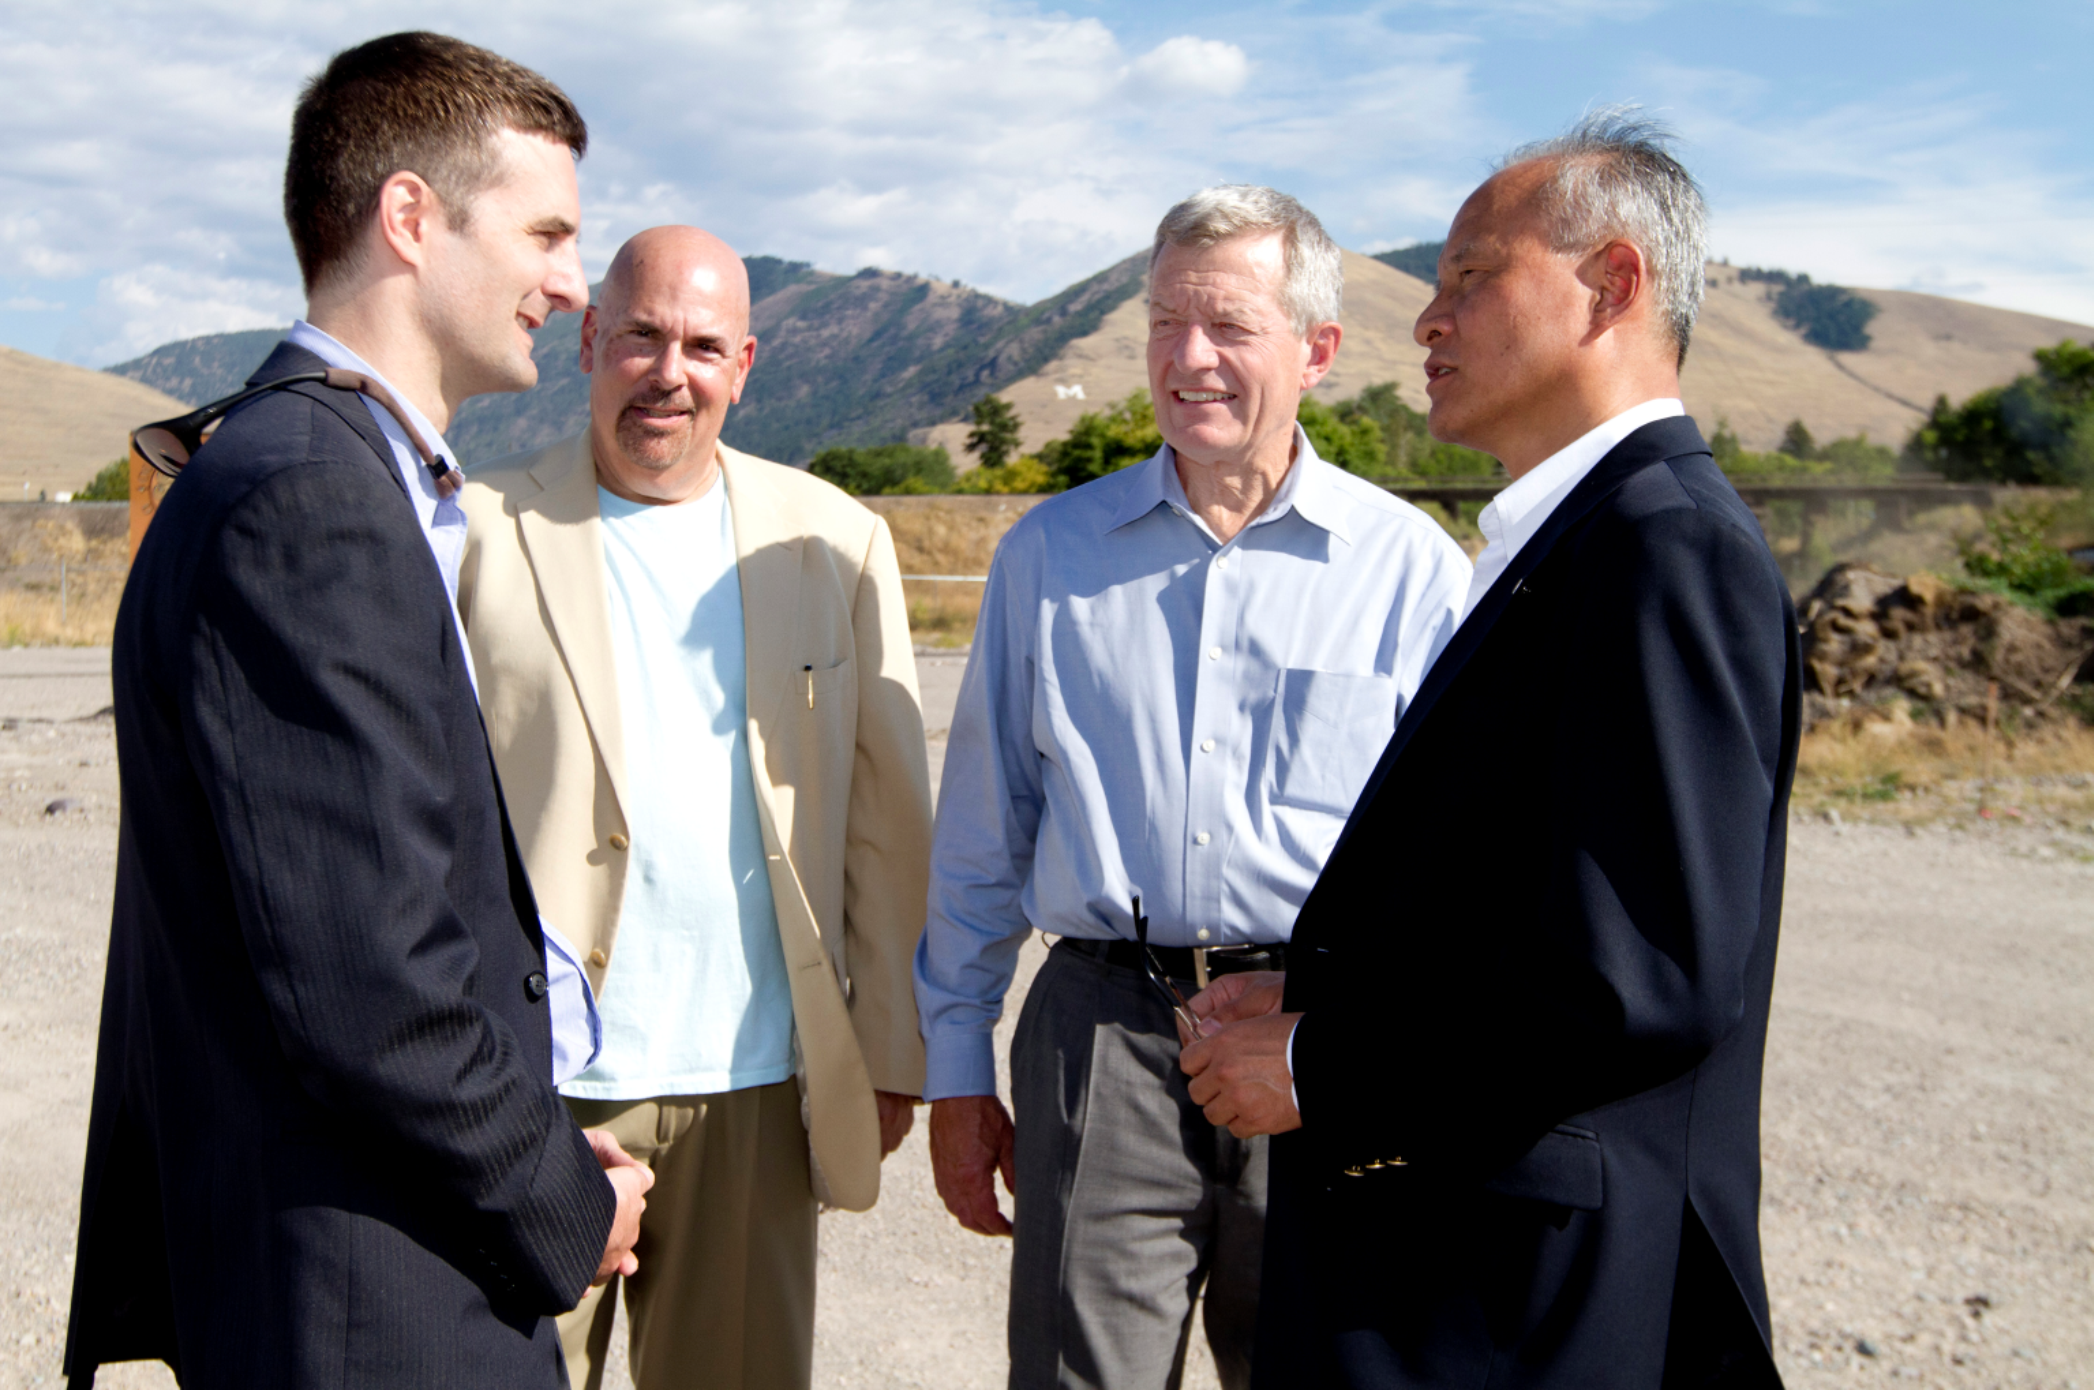 (Todd Jackson and Arnold Sherman meet with Former U.S. Senator and current U.S. Ambassador to China, Max Baucus and Chinese Ambassador to the U.S. Ciu Tiankai at the Old Sawmill District site in 2013. Click to enlarge.)